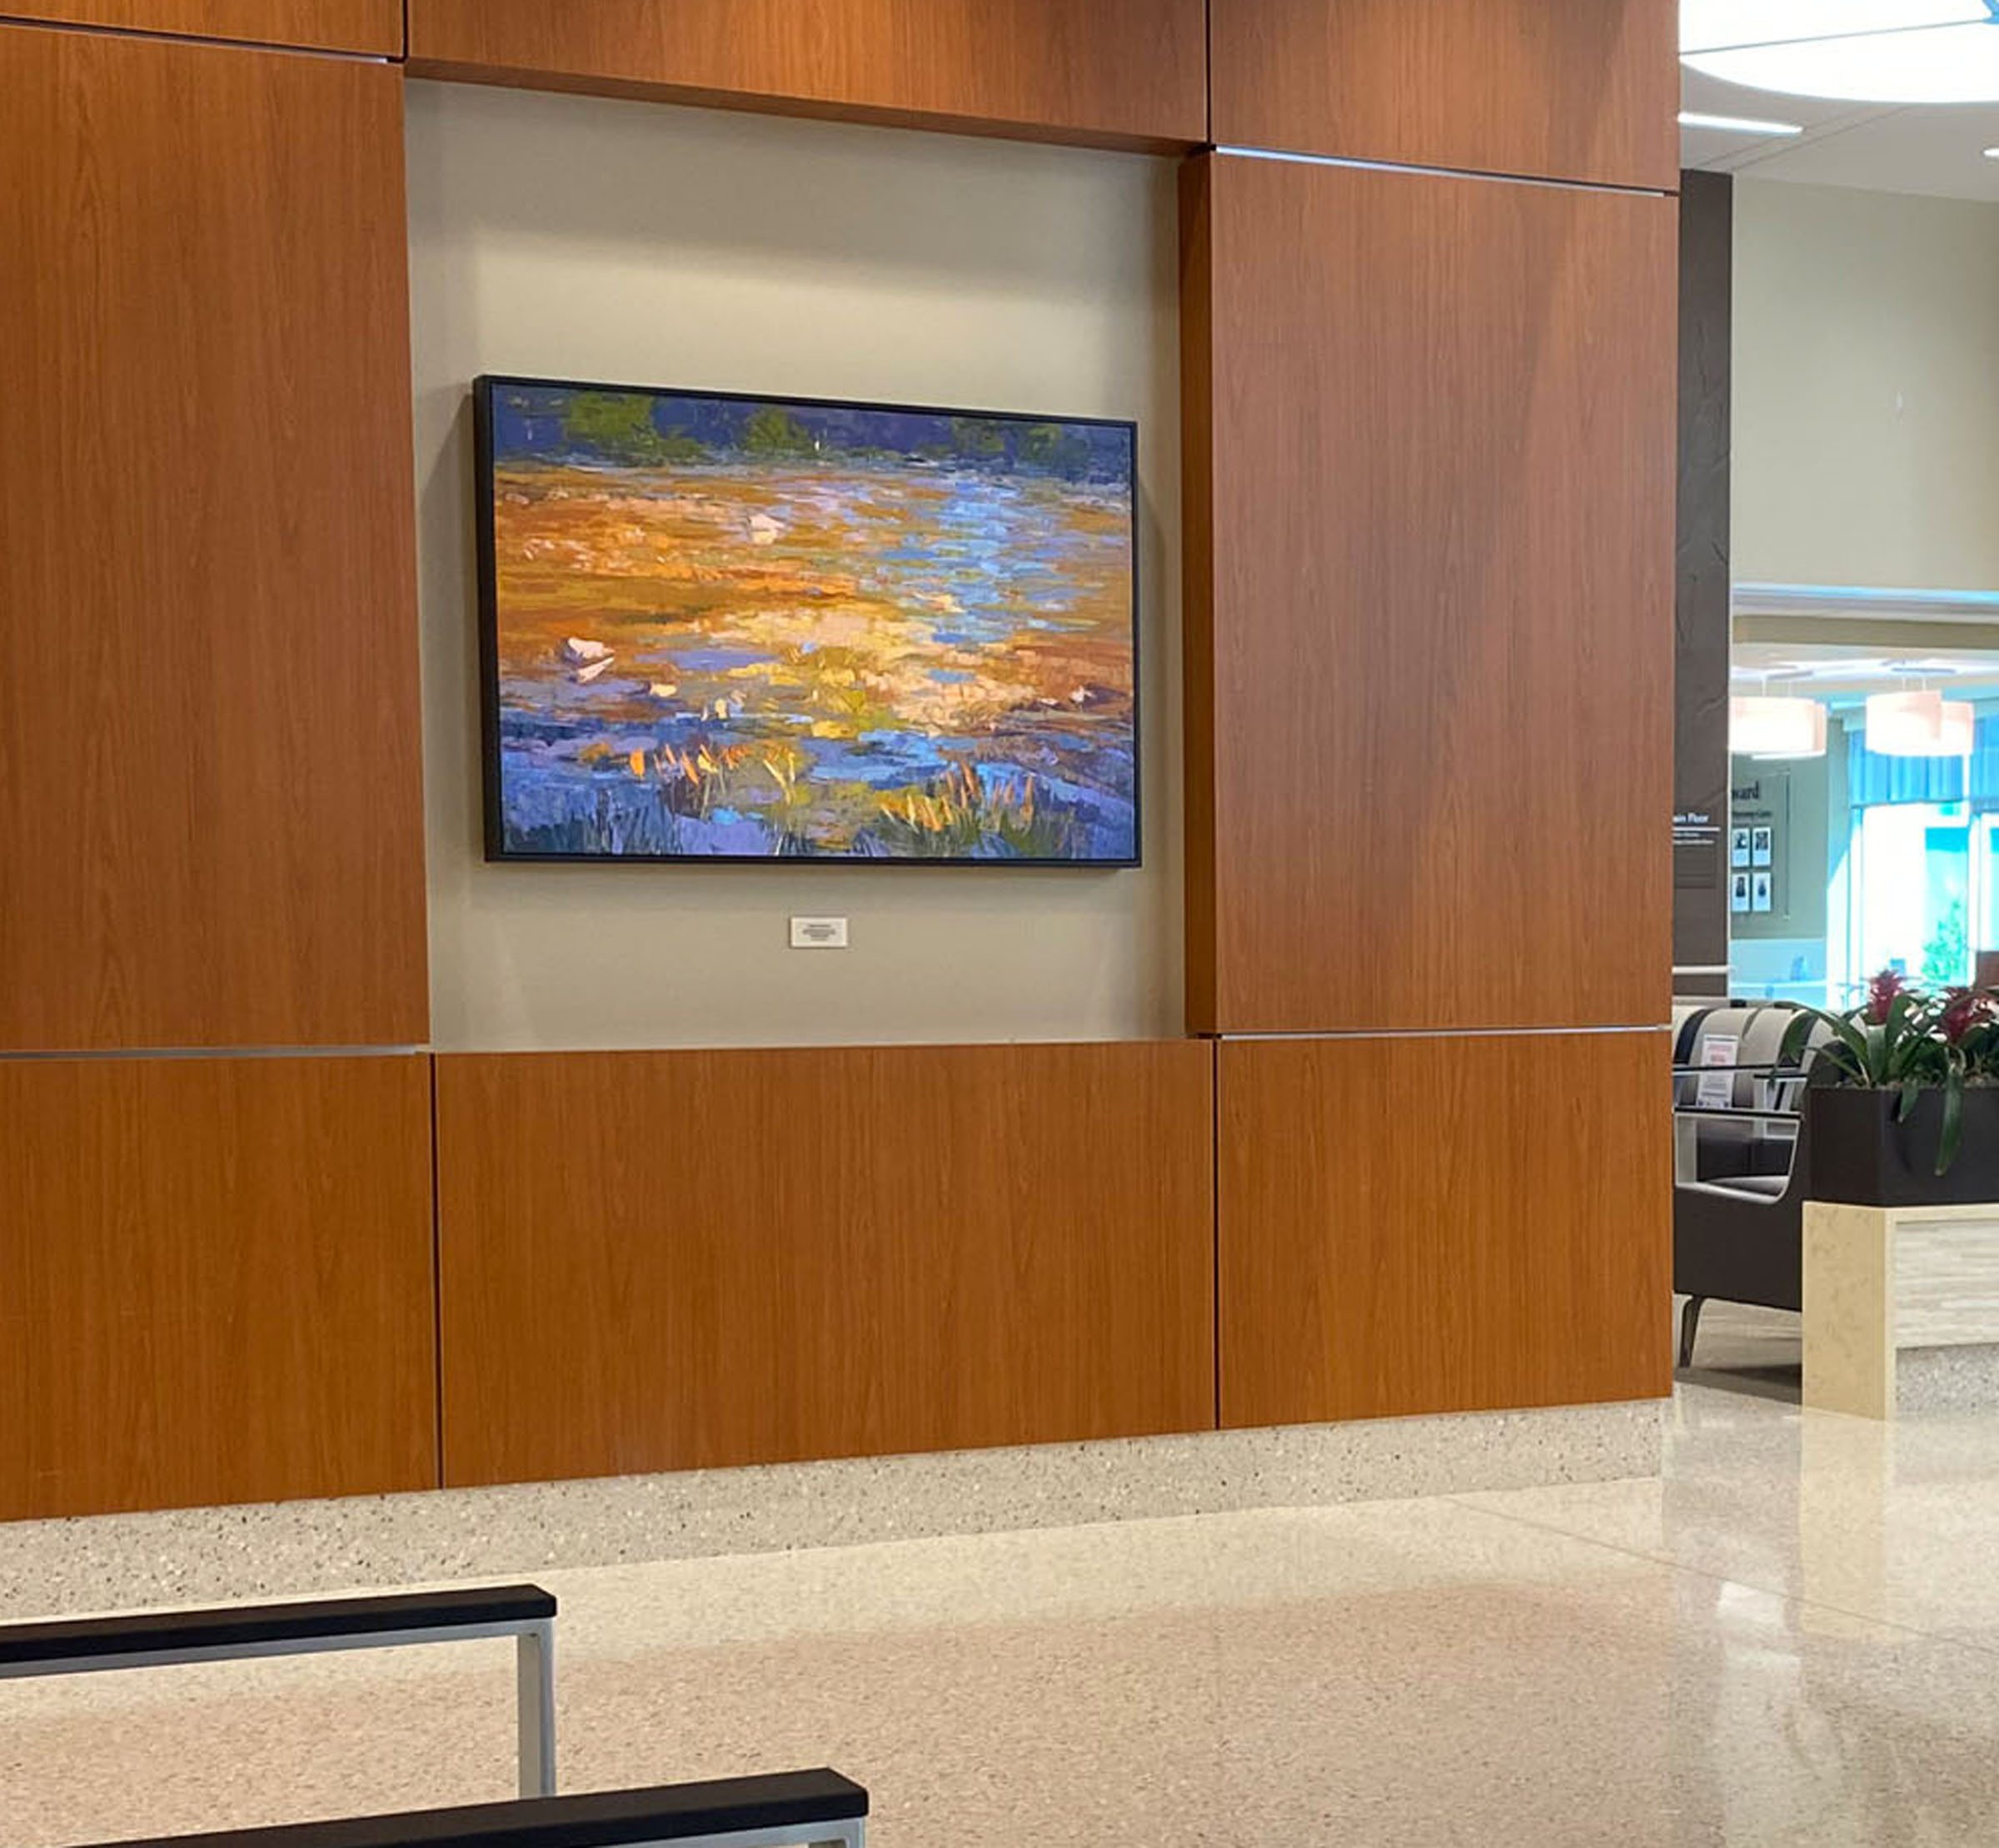 River Abstract Landscape Painting, Earth Tone Hospital Lobby Niche with Enhanced Giclee Canvas